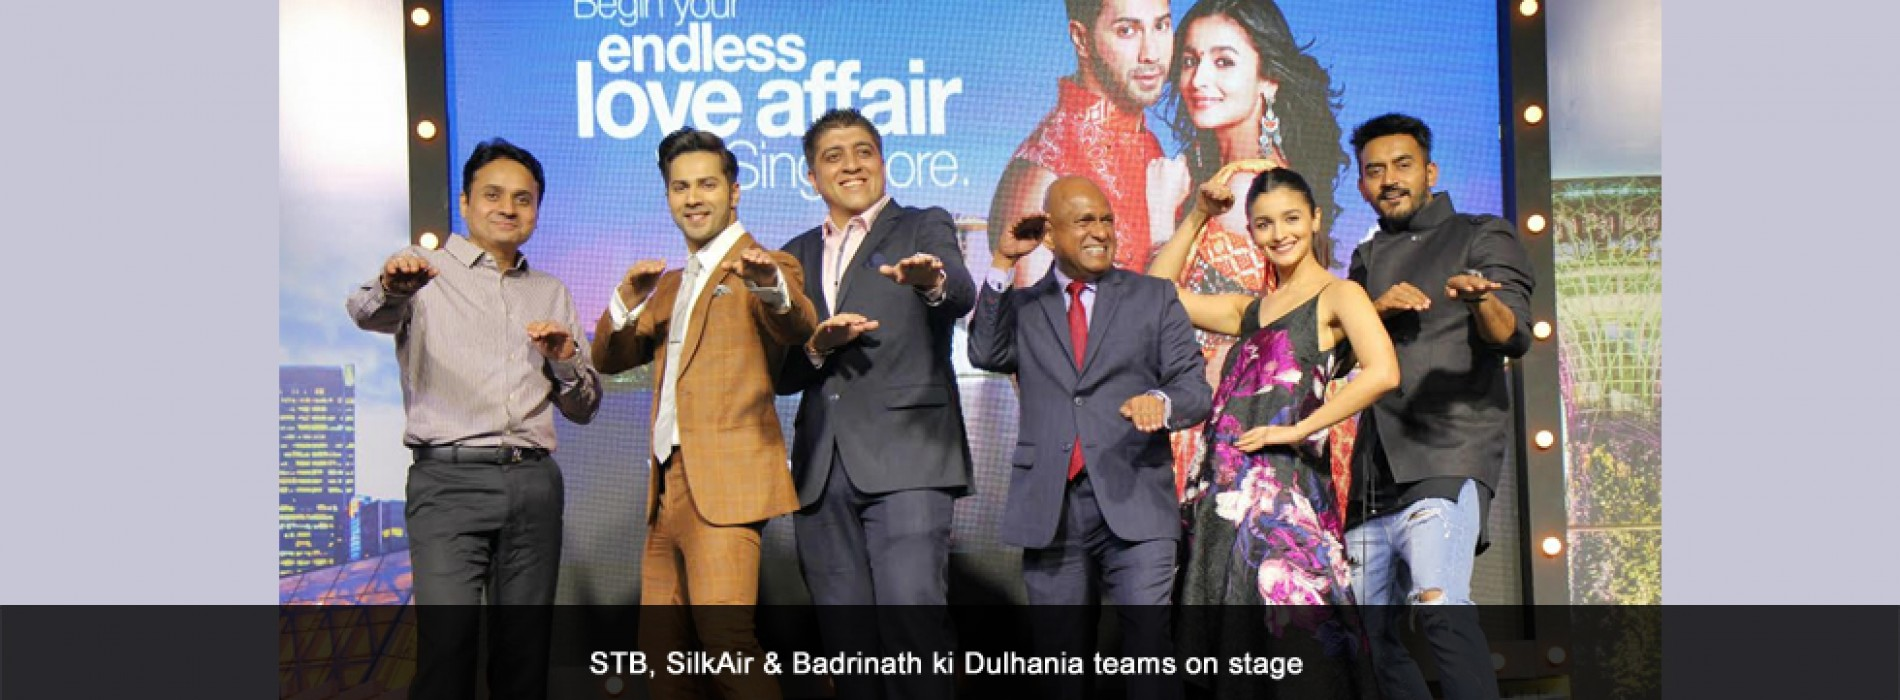 Badrinath and his Dulhania celebrate their endless love affair with Singapore and SilkAir